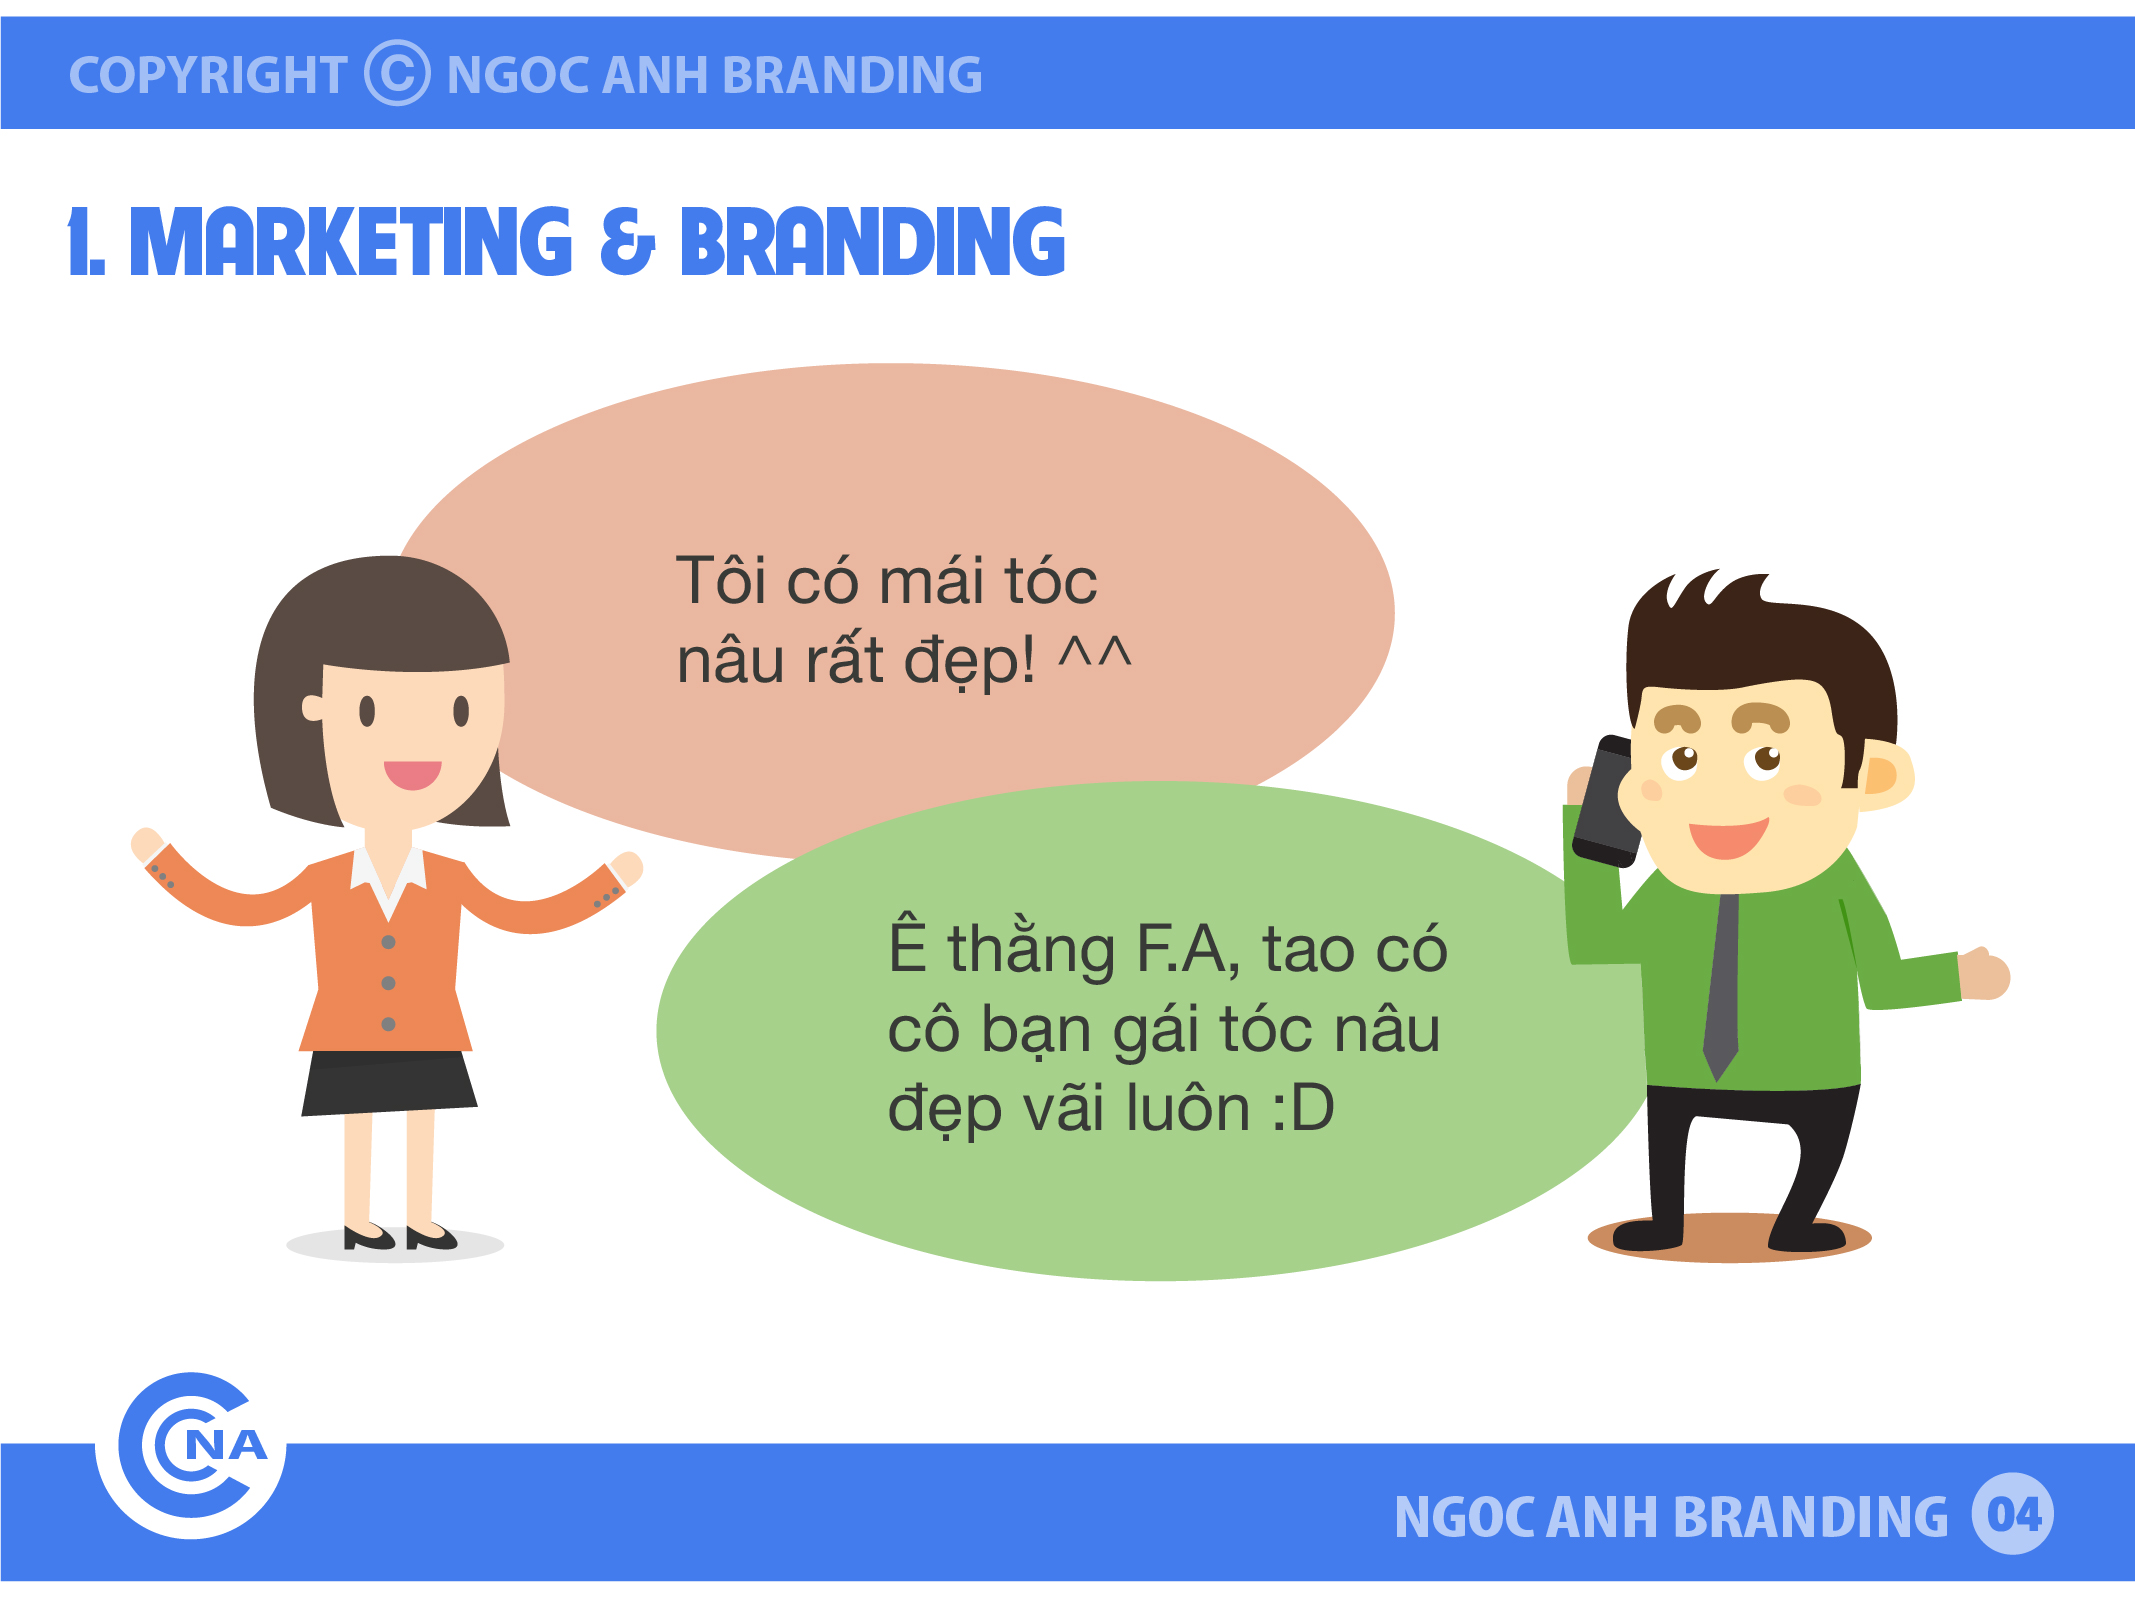 Marketing & Branding-04